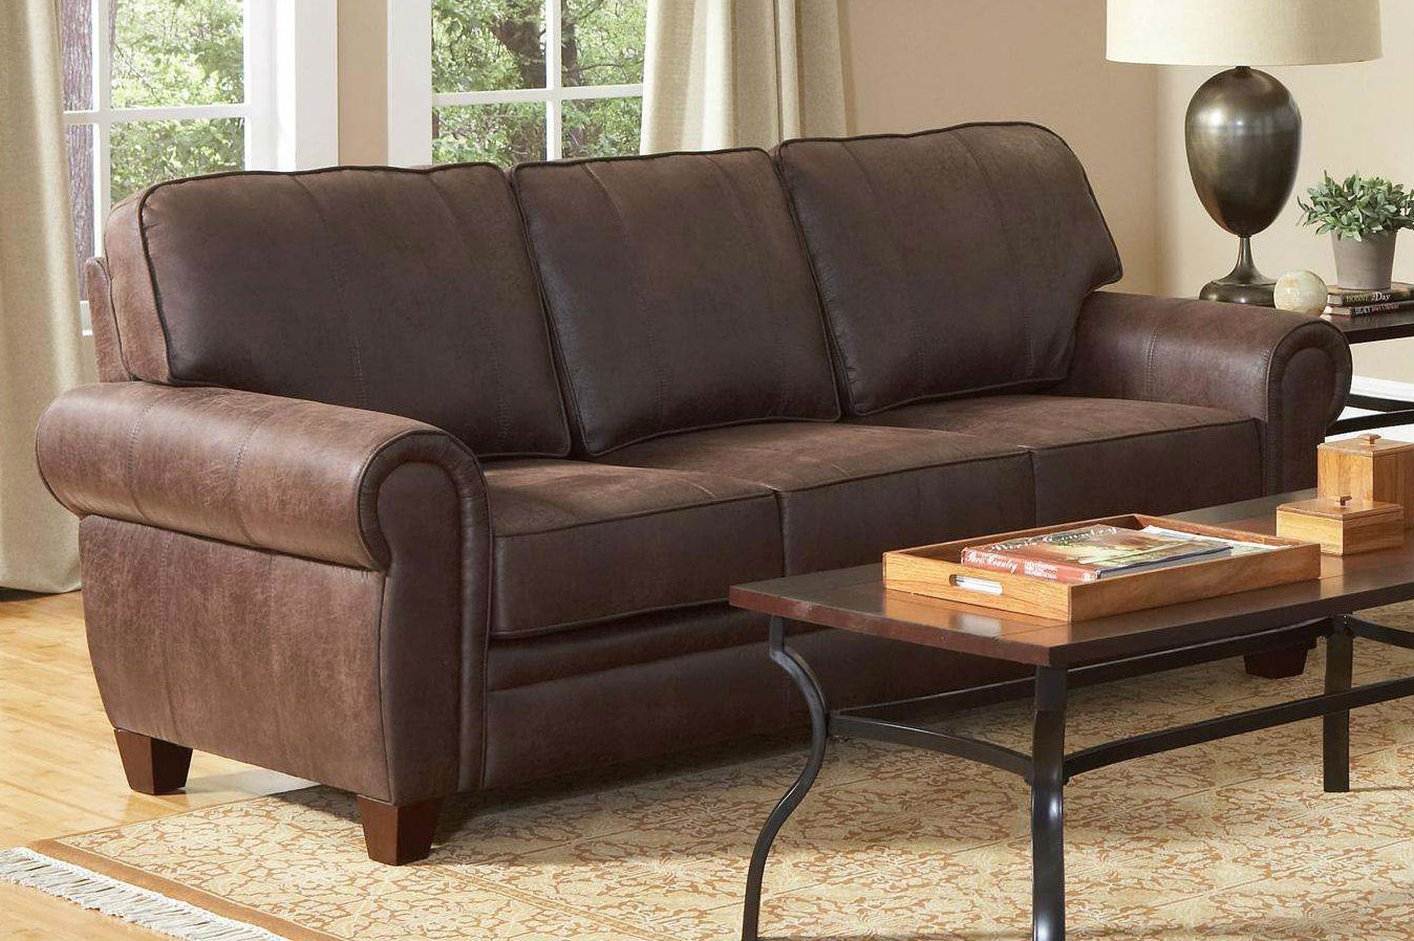 Coaster Bentley 504201 Brown Fabric Sofa Steal A Sofa Furniture Outlet Los Angeles Ca